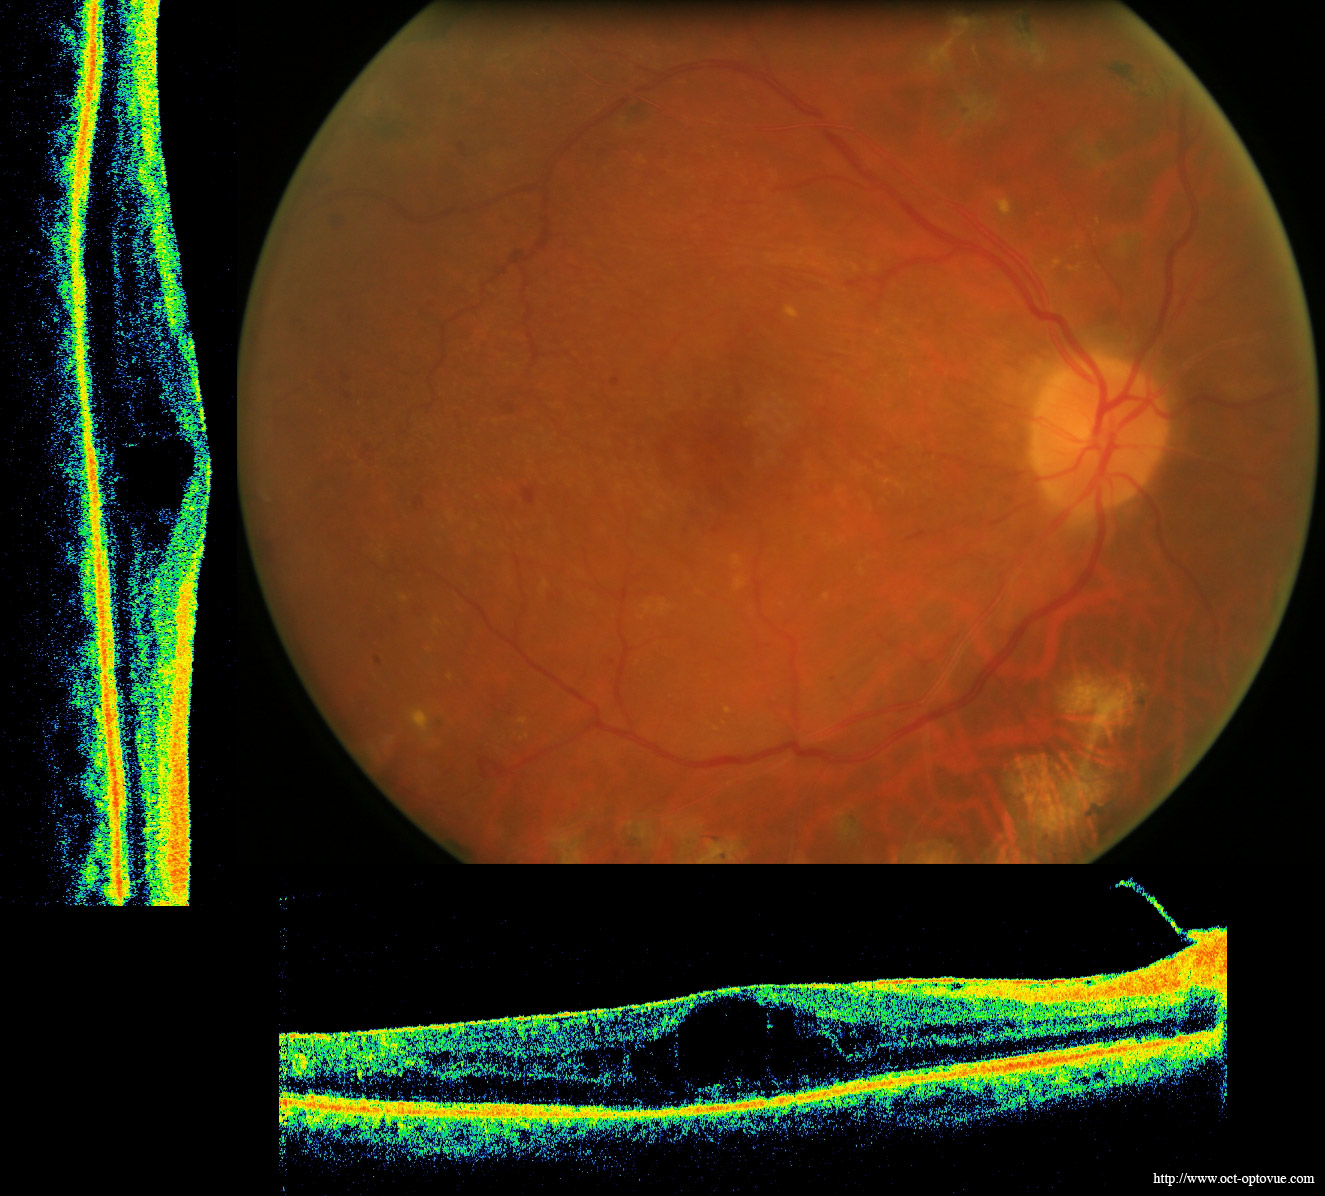 thesis on diabetic retinopathy Diabetic retinopathy  diabetic retinopathy is a disease that occurs when tiny blood vessels in the eye become damaged these delicate blood vessels are important because they nourish the retina (the nerve layer inside the eye that records what one sees and sends the information to the brain.